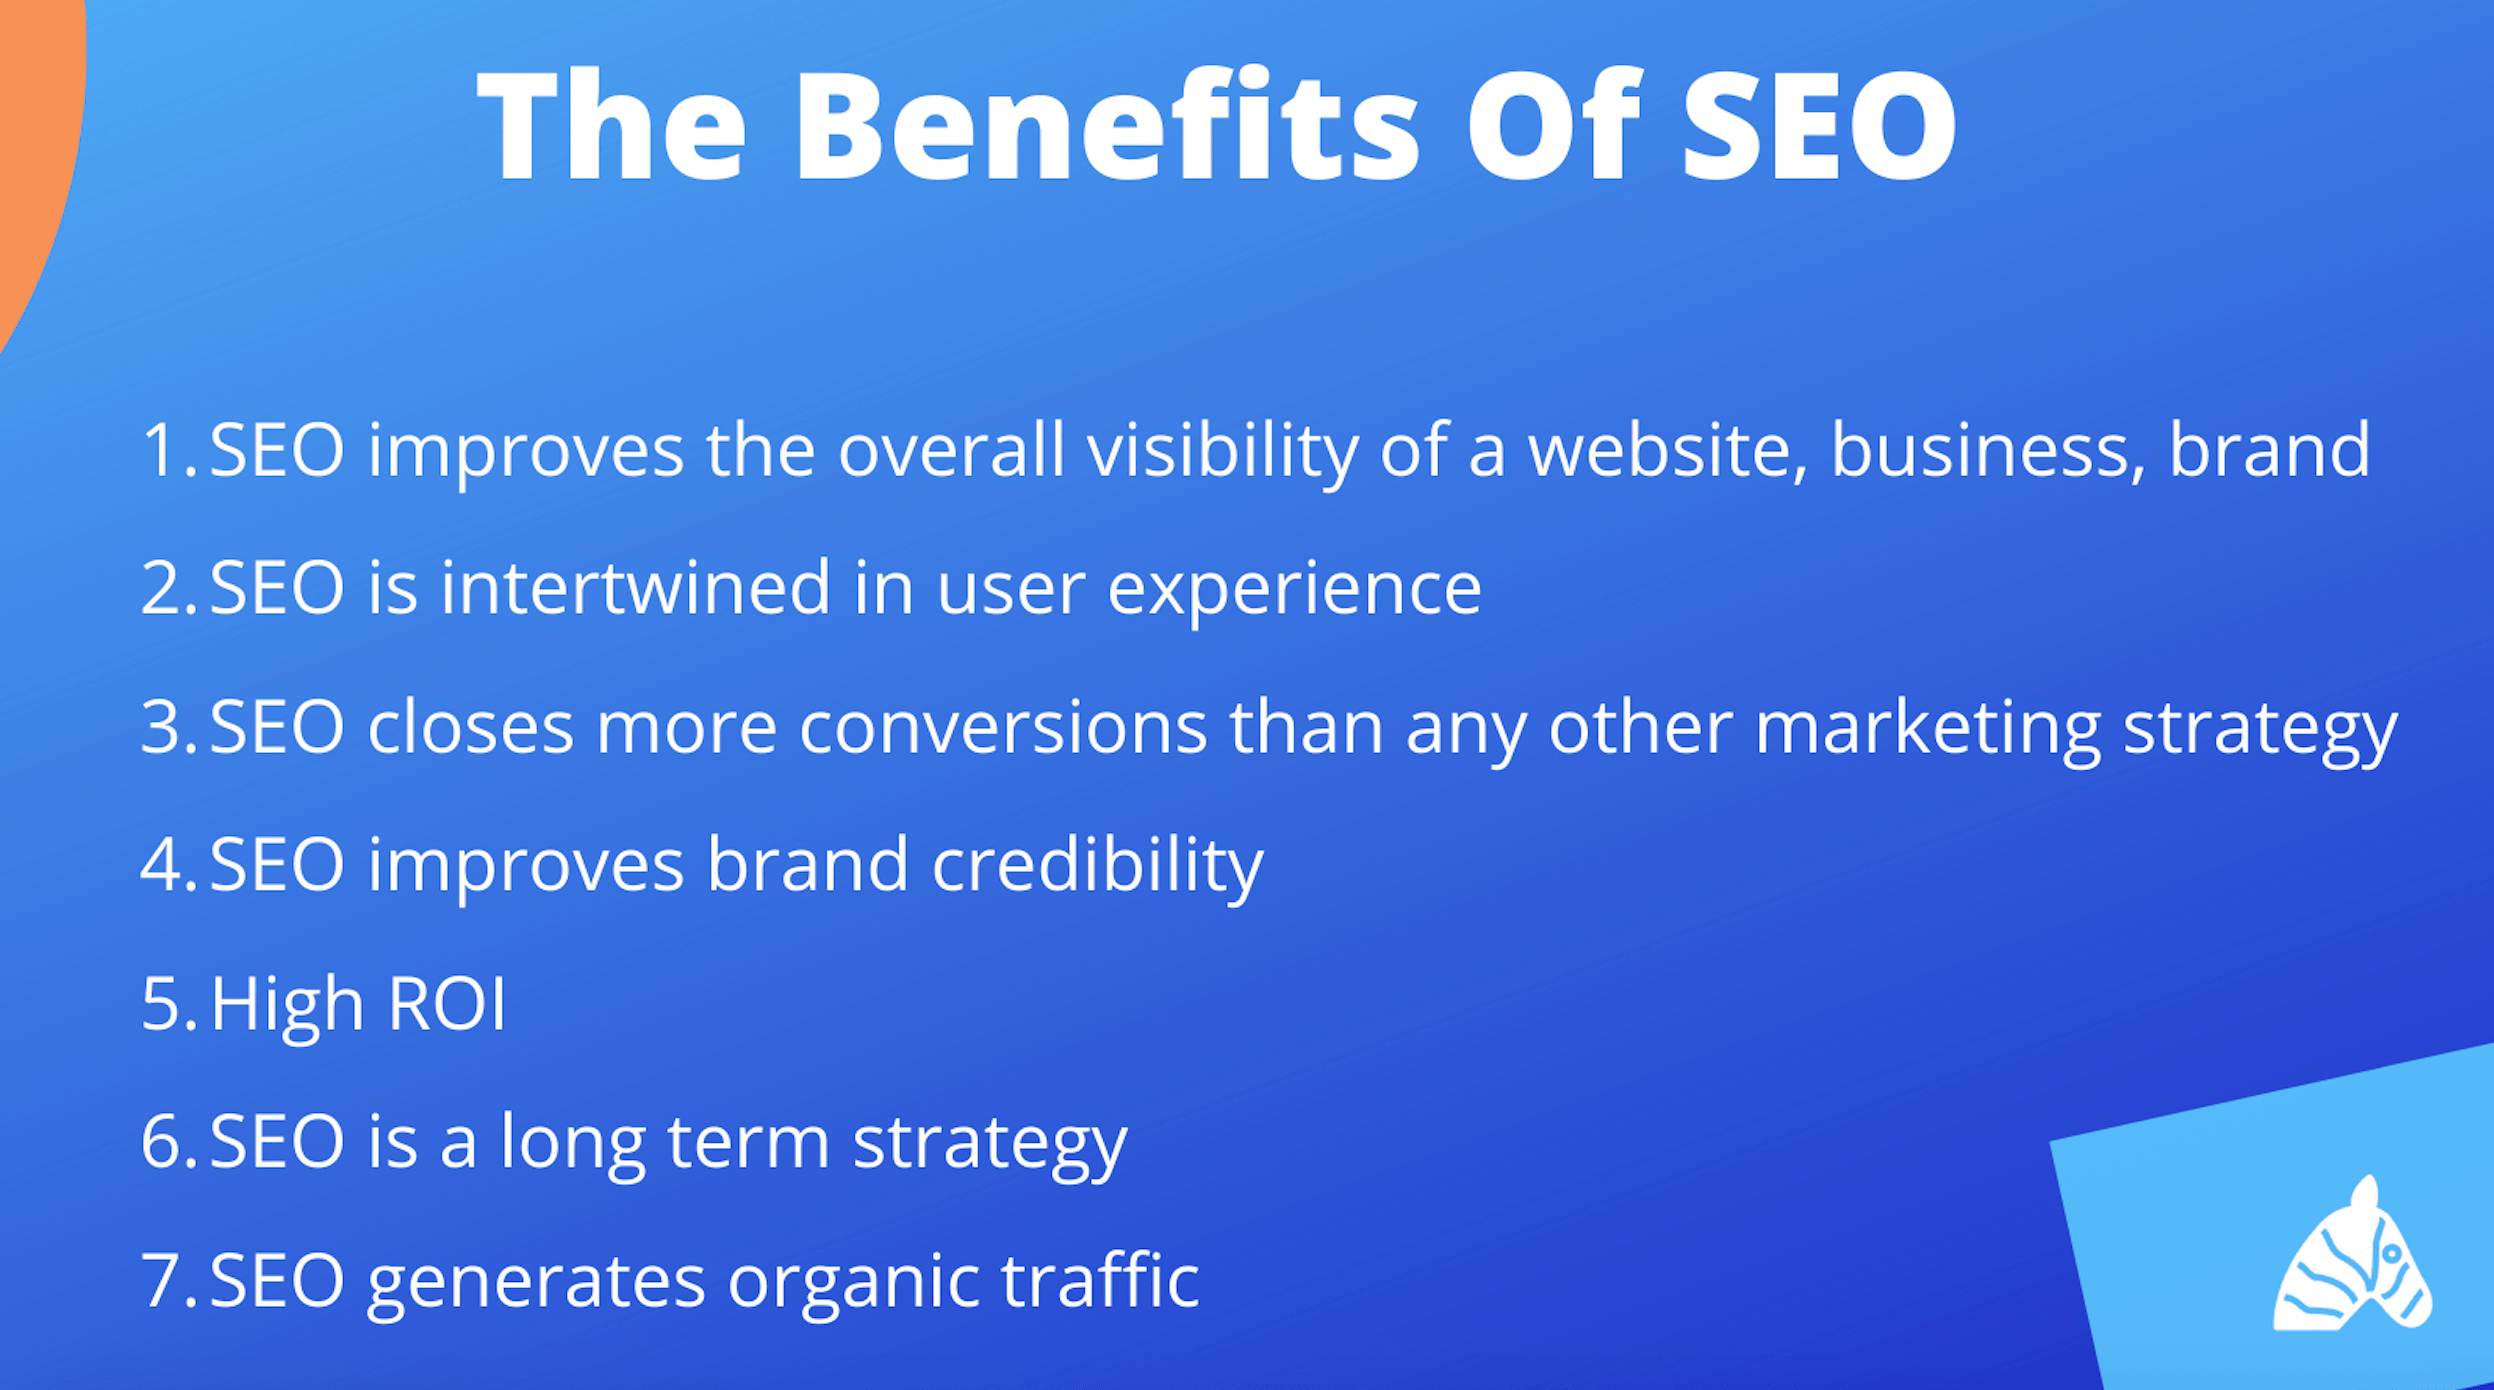 the benefits of seo vs google ads as a marketing strategy